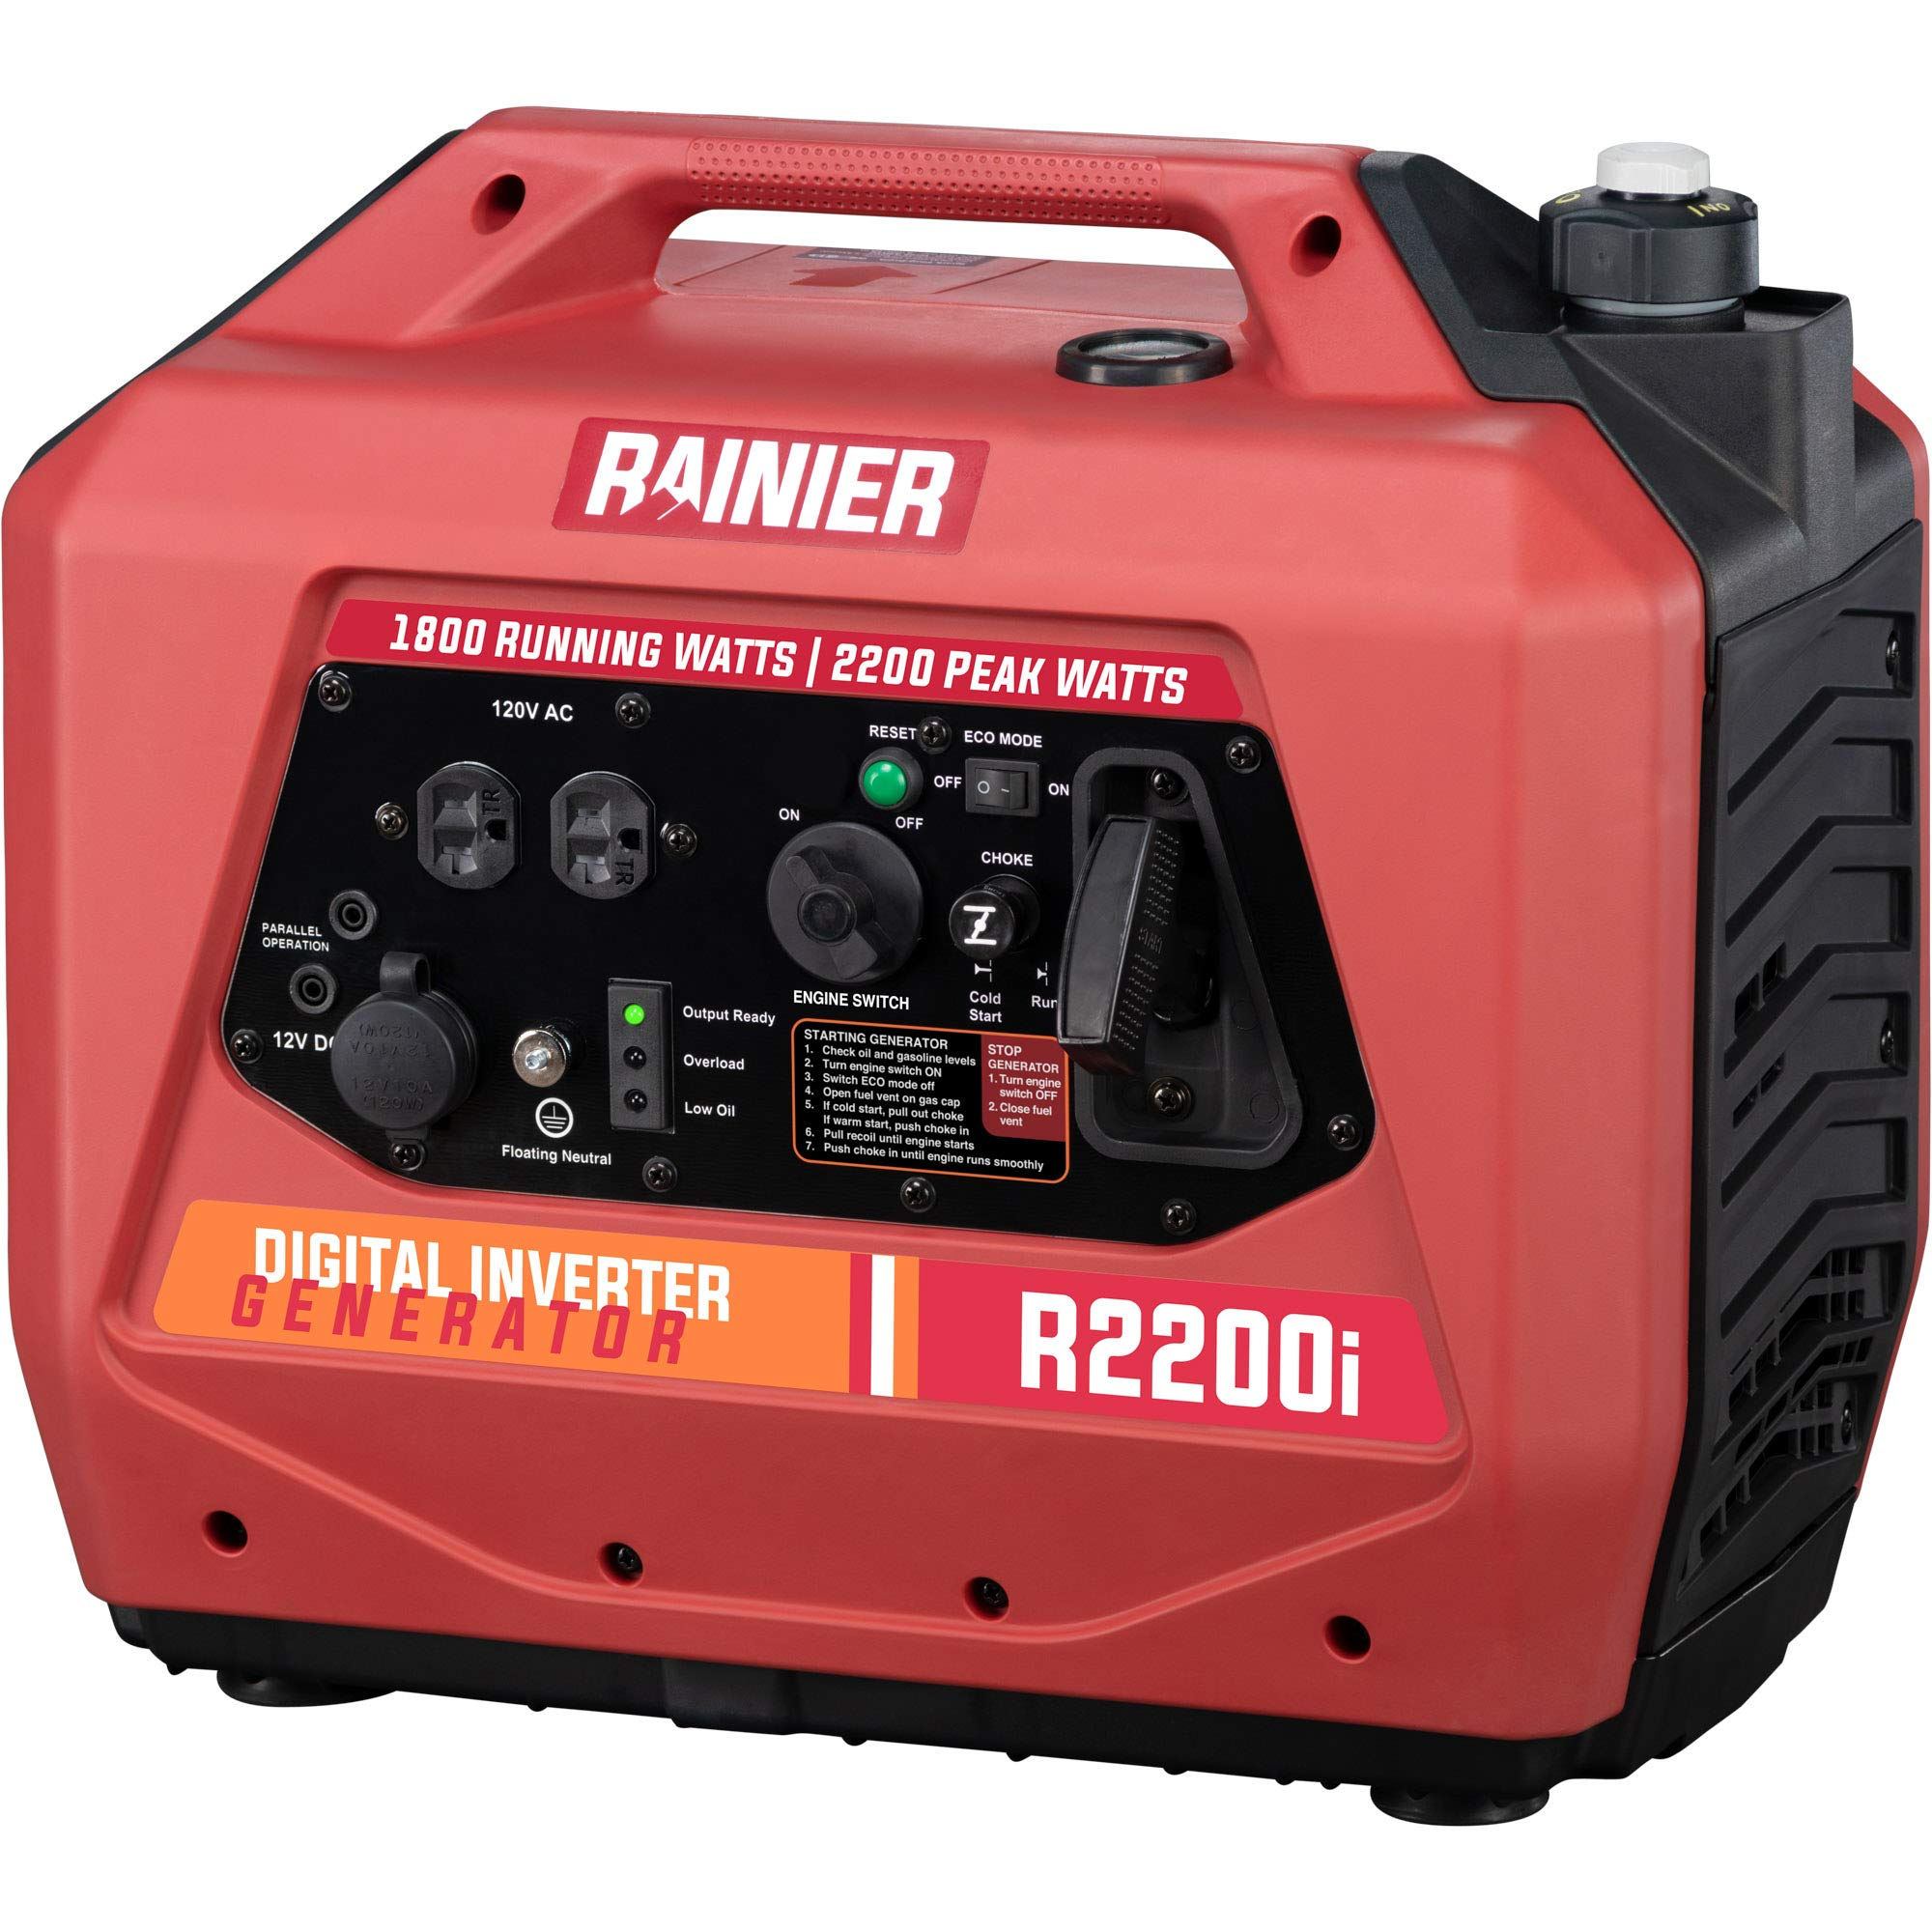 Rainier Outdoor Power Equipment R2200i Super Quiet Portable Inverter Generator 1800 Running & 2200 Peak Watts-Gas…